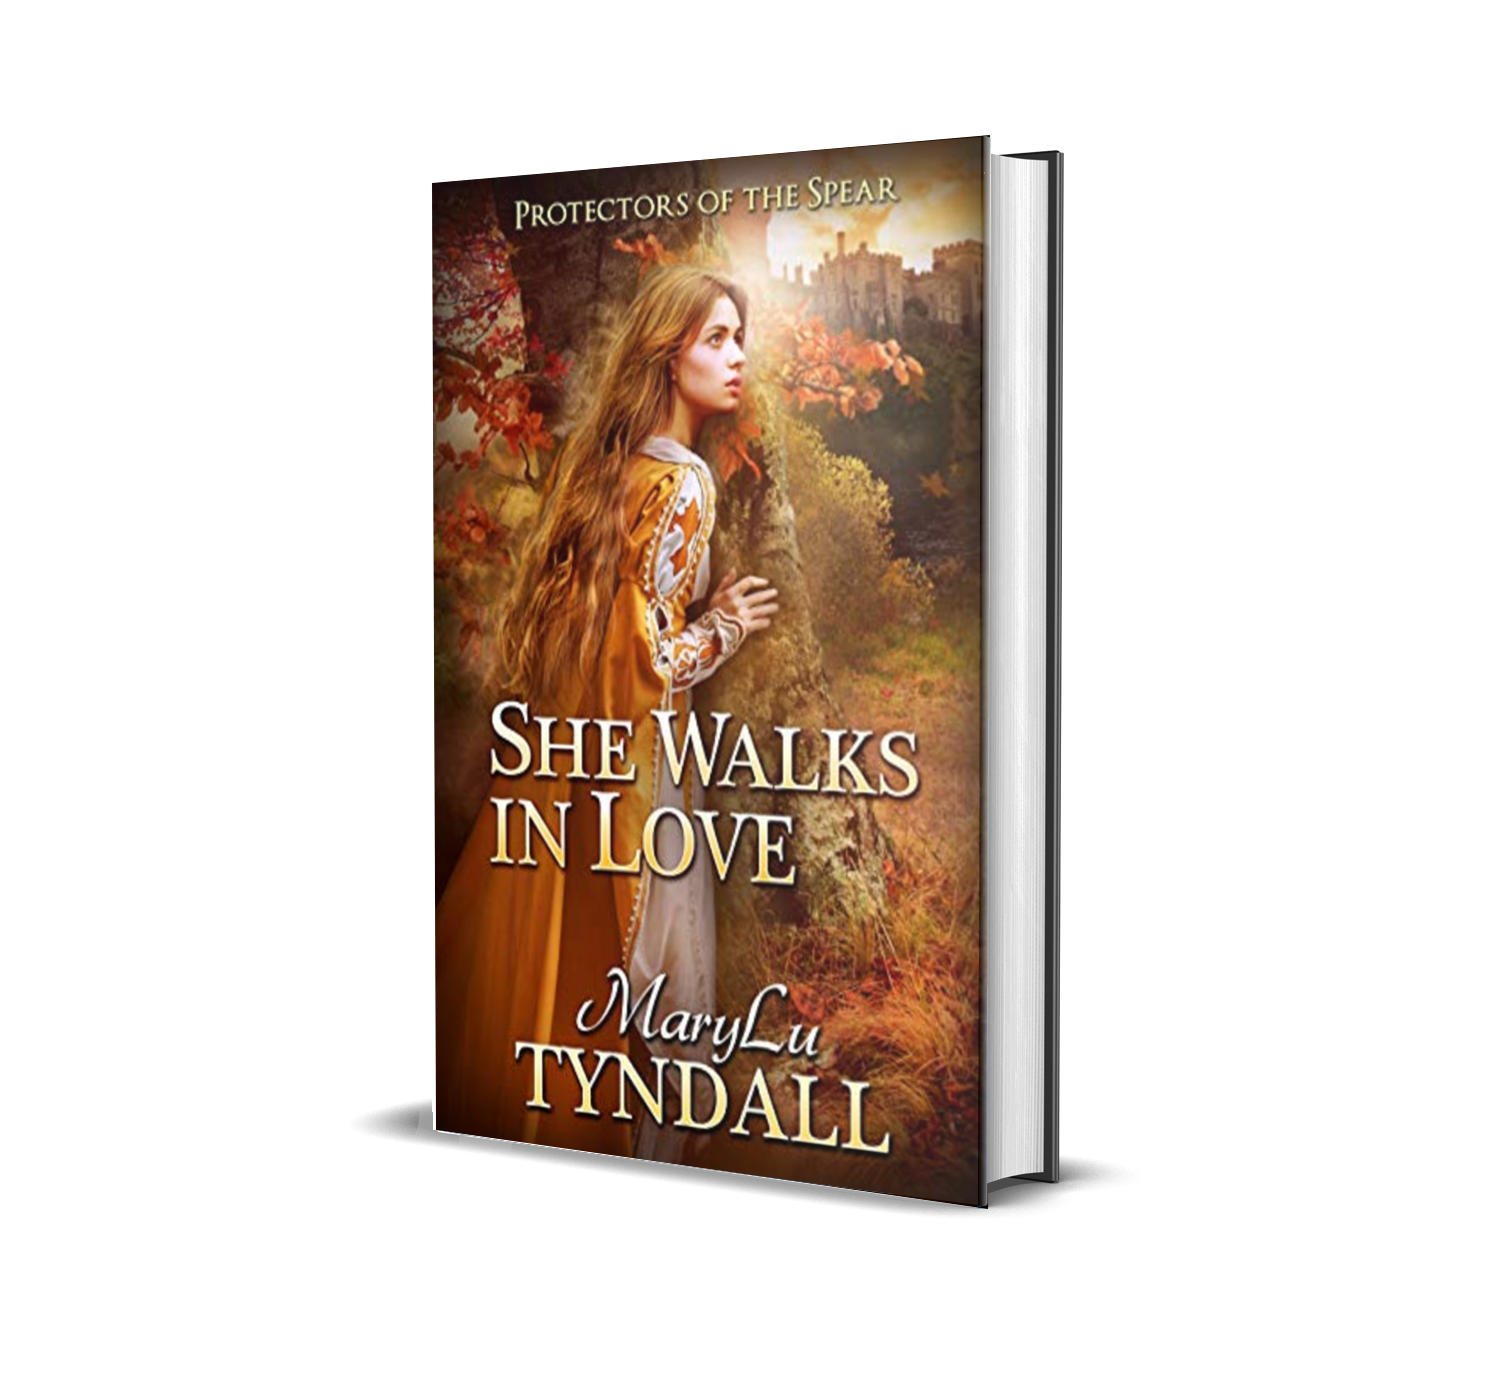 She Walks in Love by MaryLu Tyndall